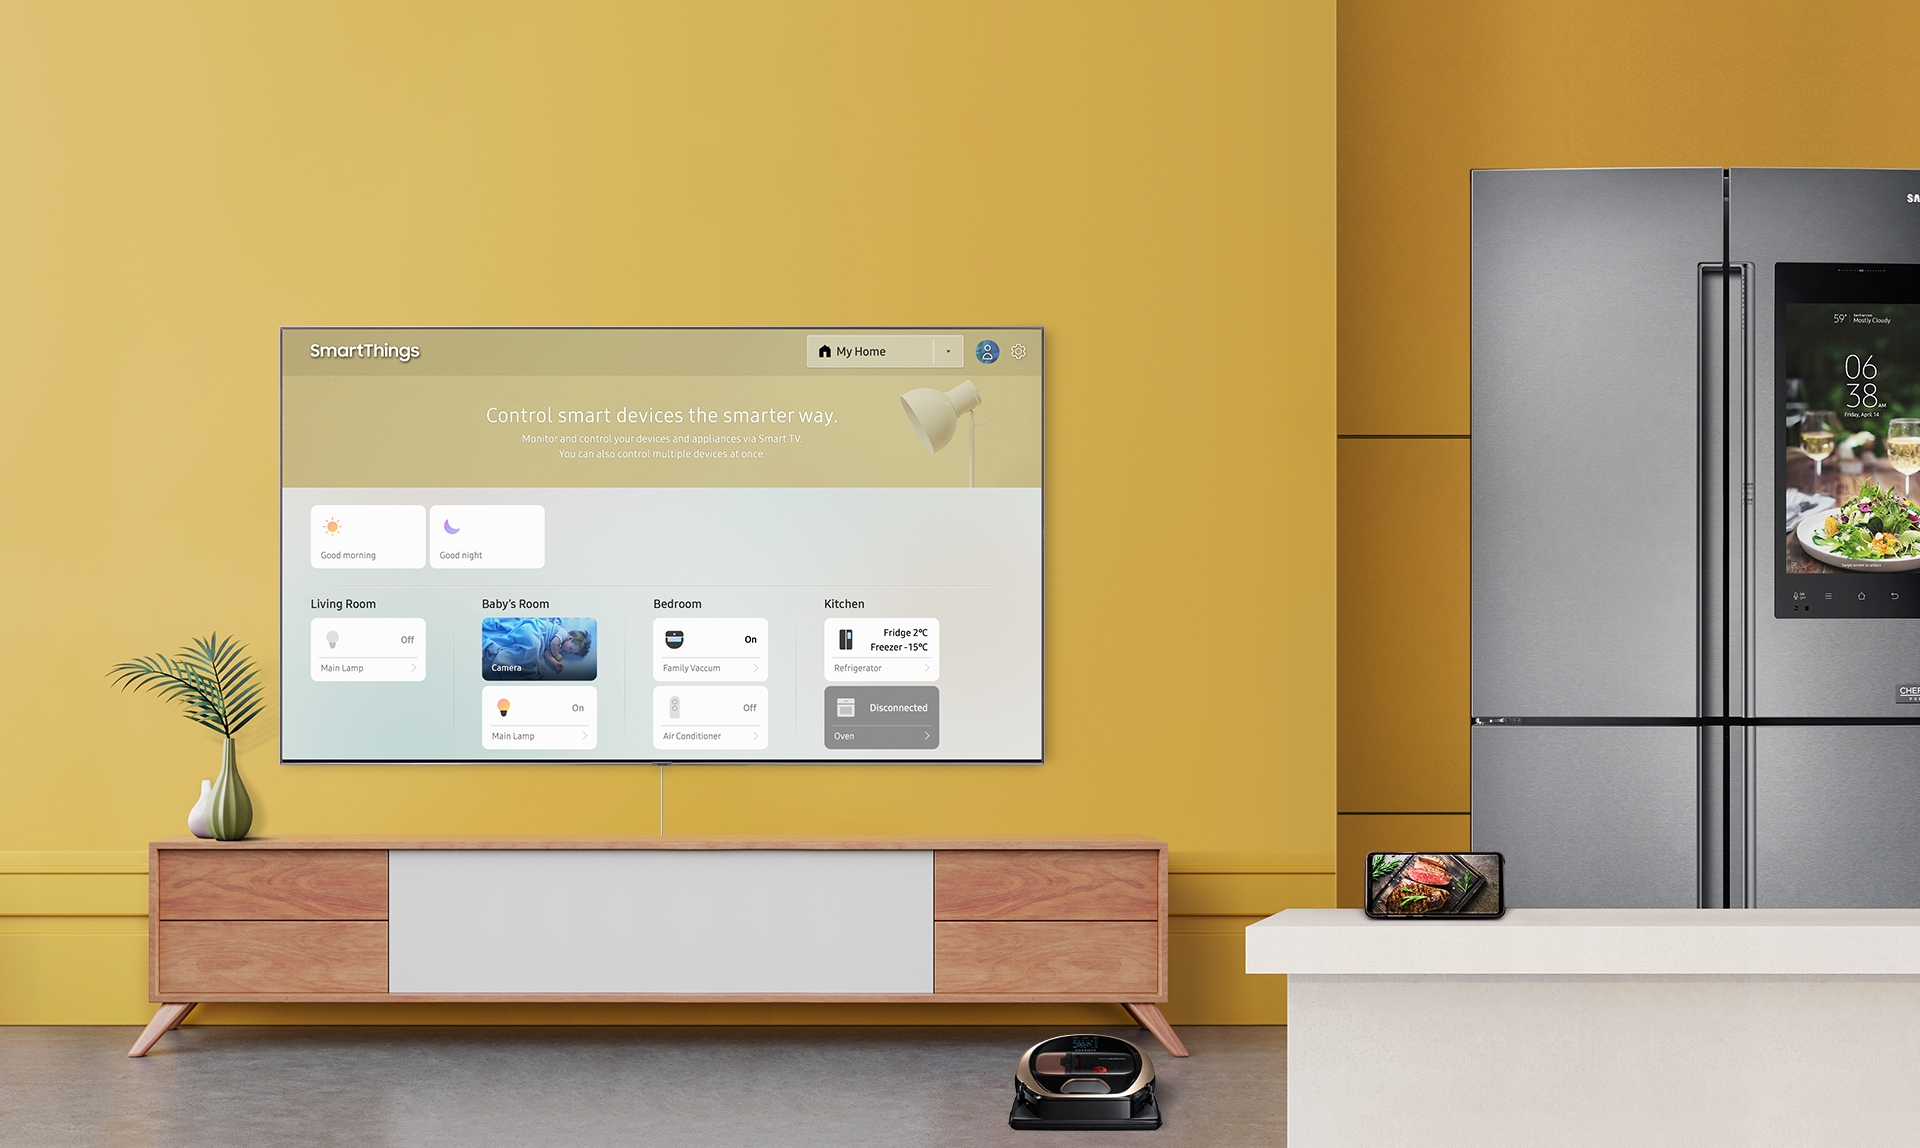 A 2019 Samsung QLED TV displaying a SmartThings dashboard on a smart tv mounted on a wall surrouned by sample connected home appliances and devices: a refridgerator, smart phone, and vacuum cleaner.